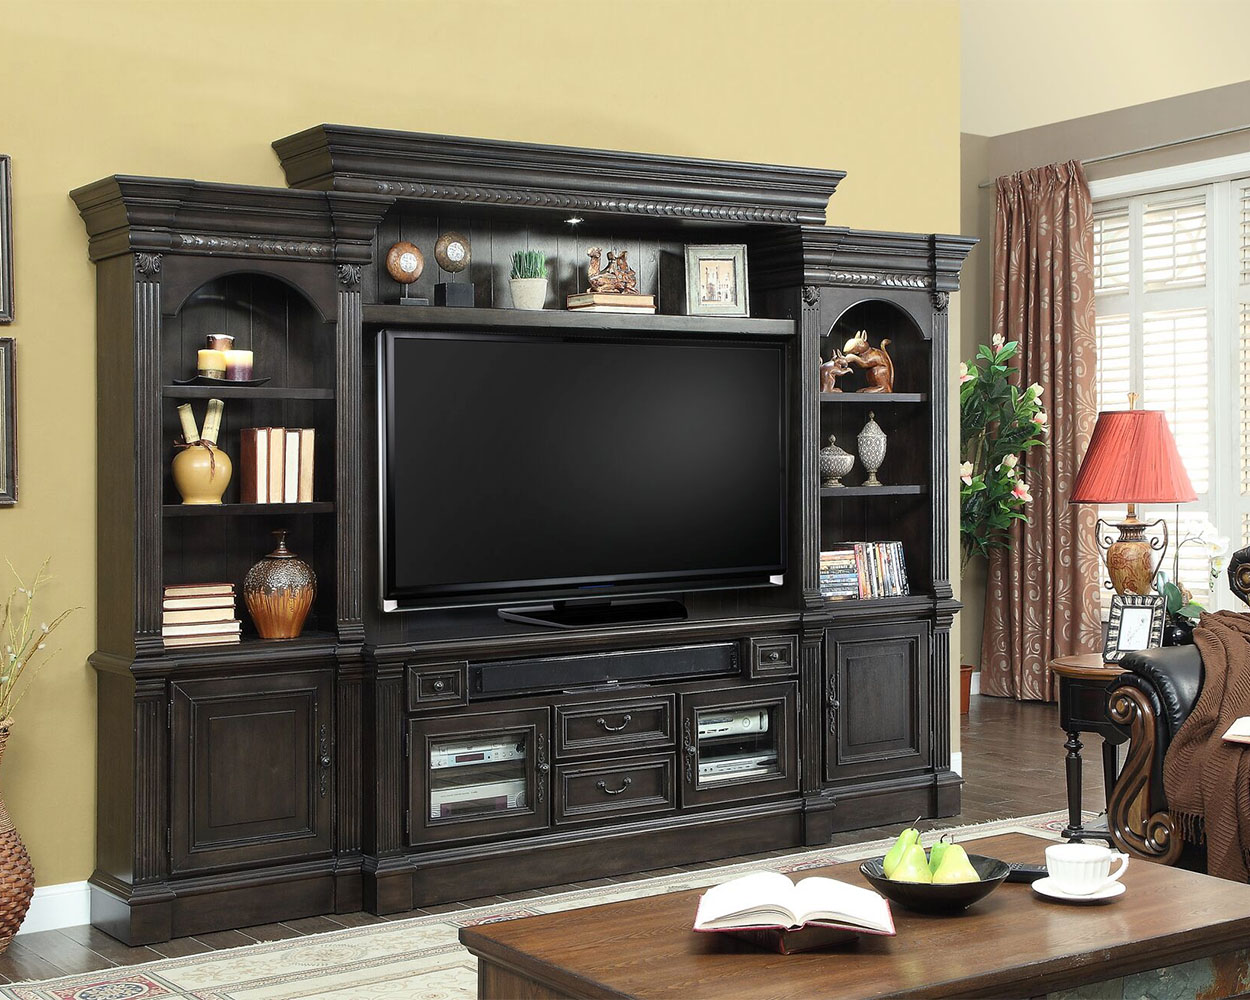 Parker house tv entertainment center wall unit fairbanks Home entertainment center